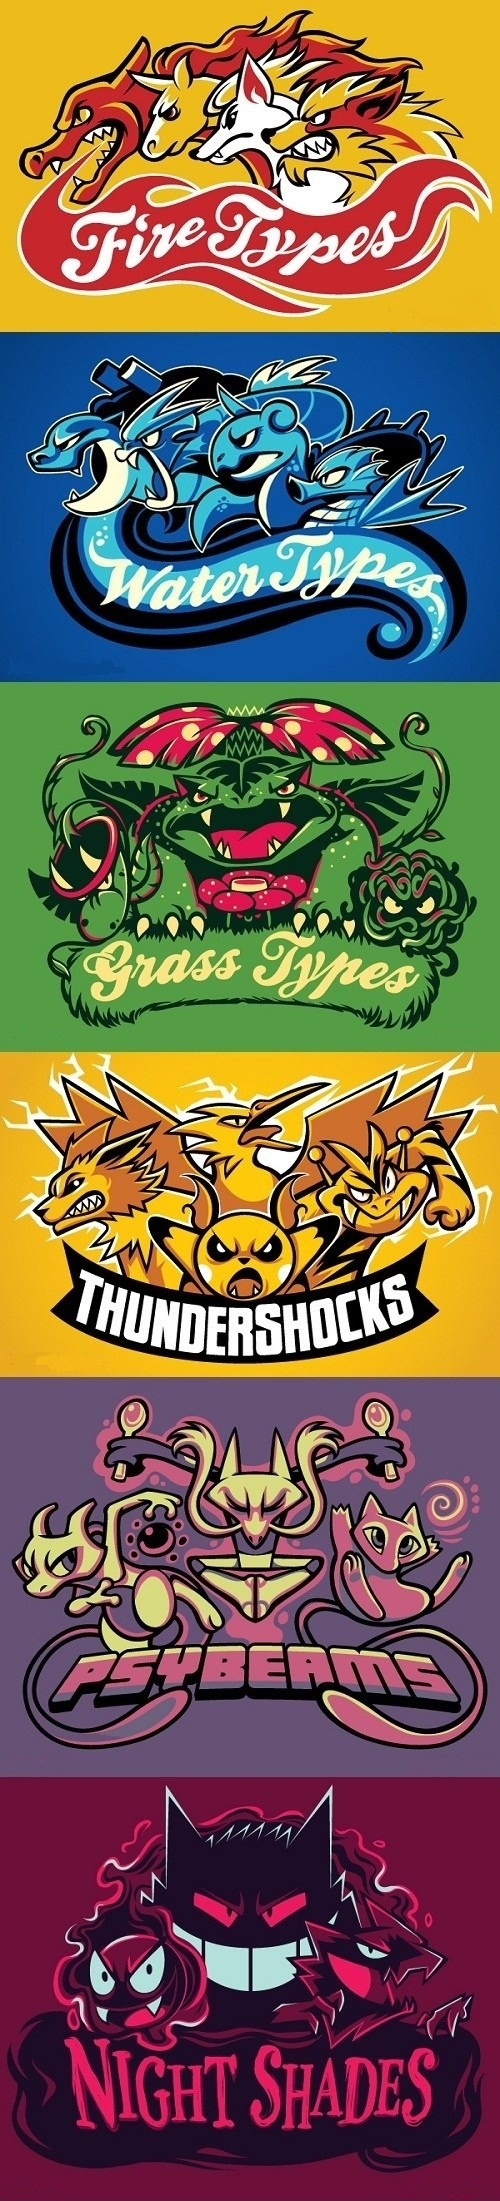 Pokemon Sports Teams